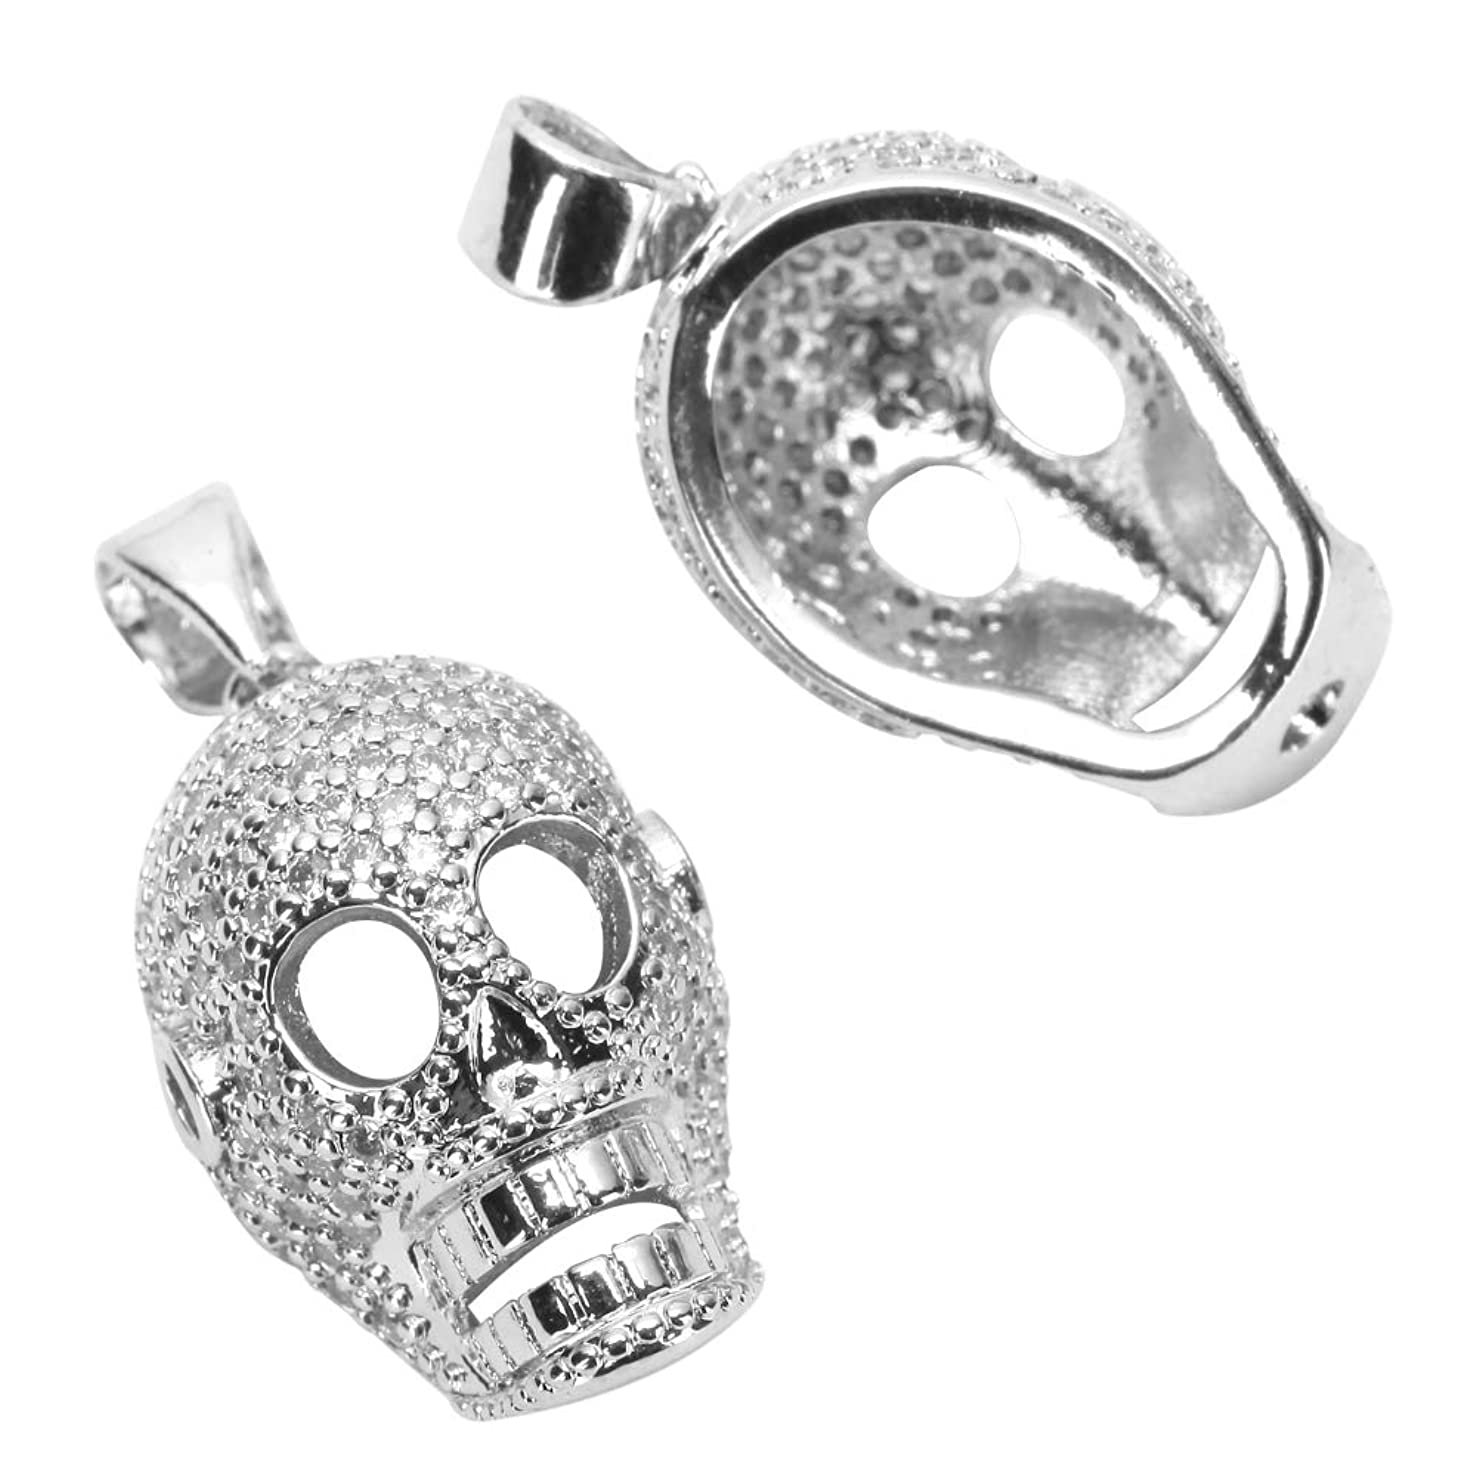 2pcs Top Quality Silver Dia De Muertos Day of the Dead Charm Skull Pendant with Diamond Simulants # MCAC39